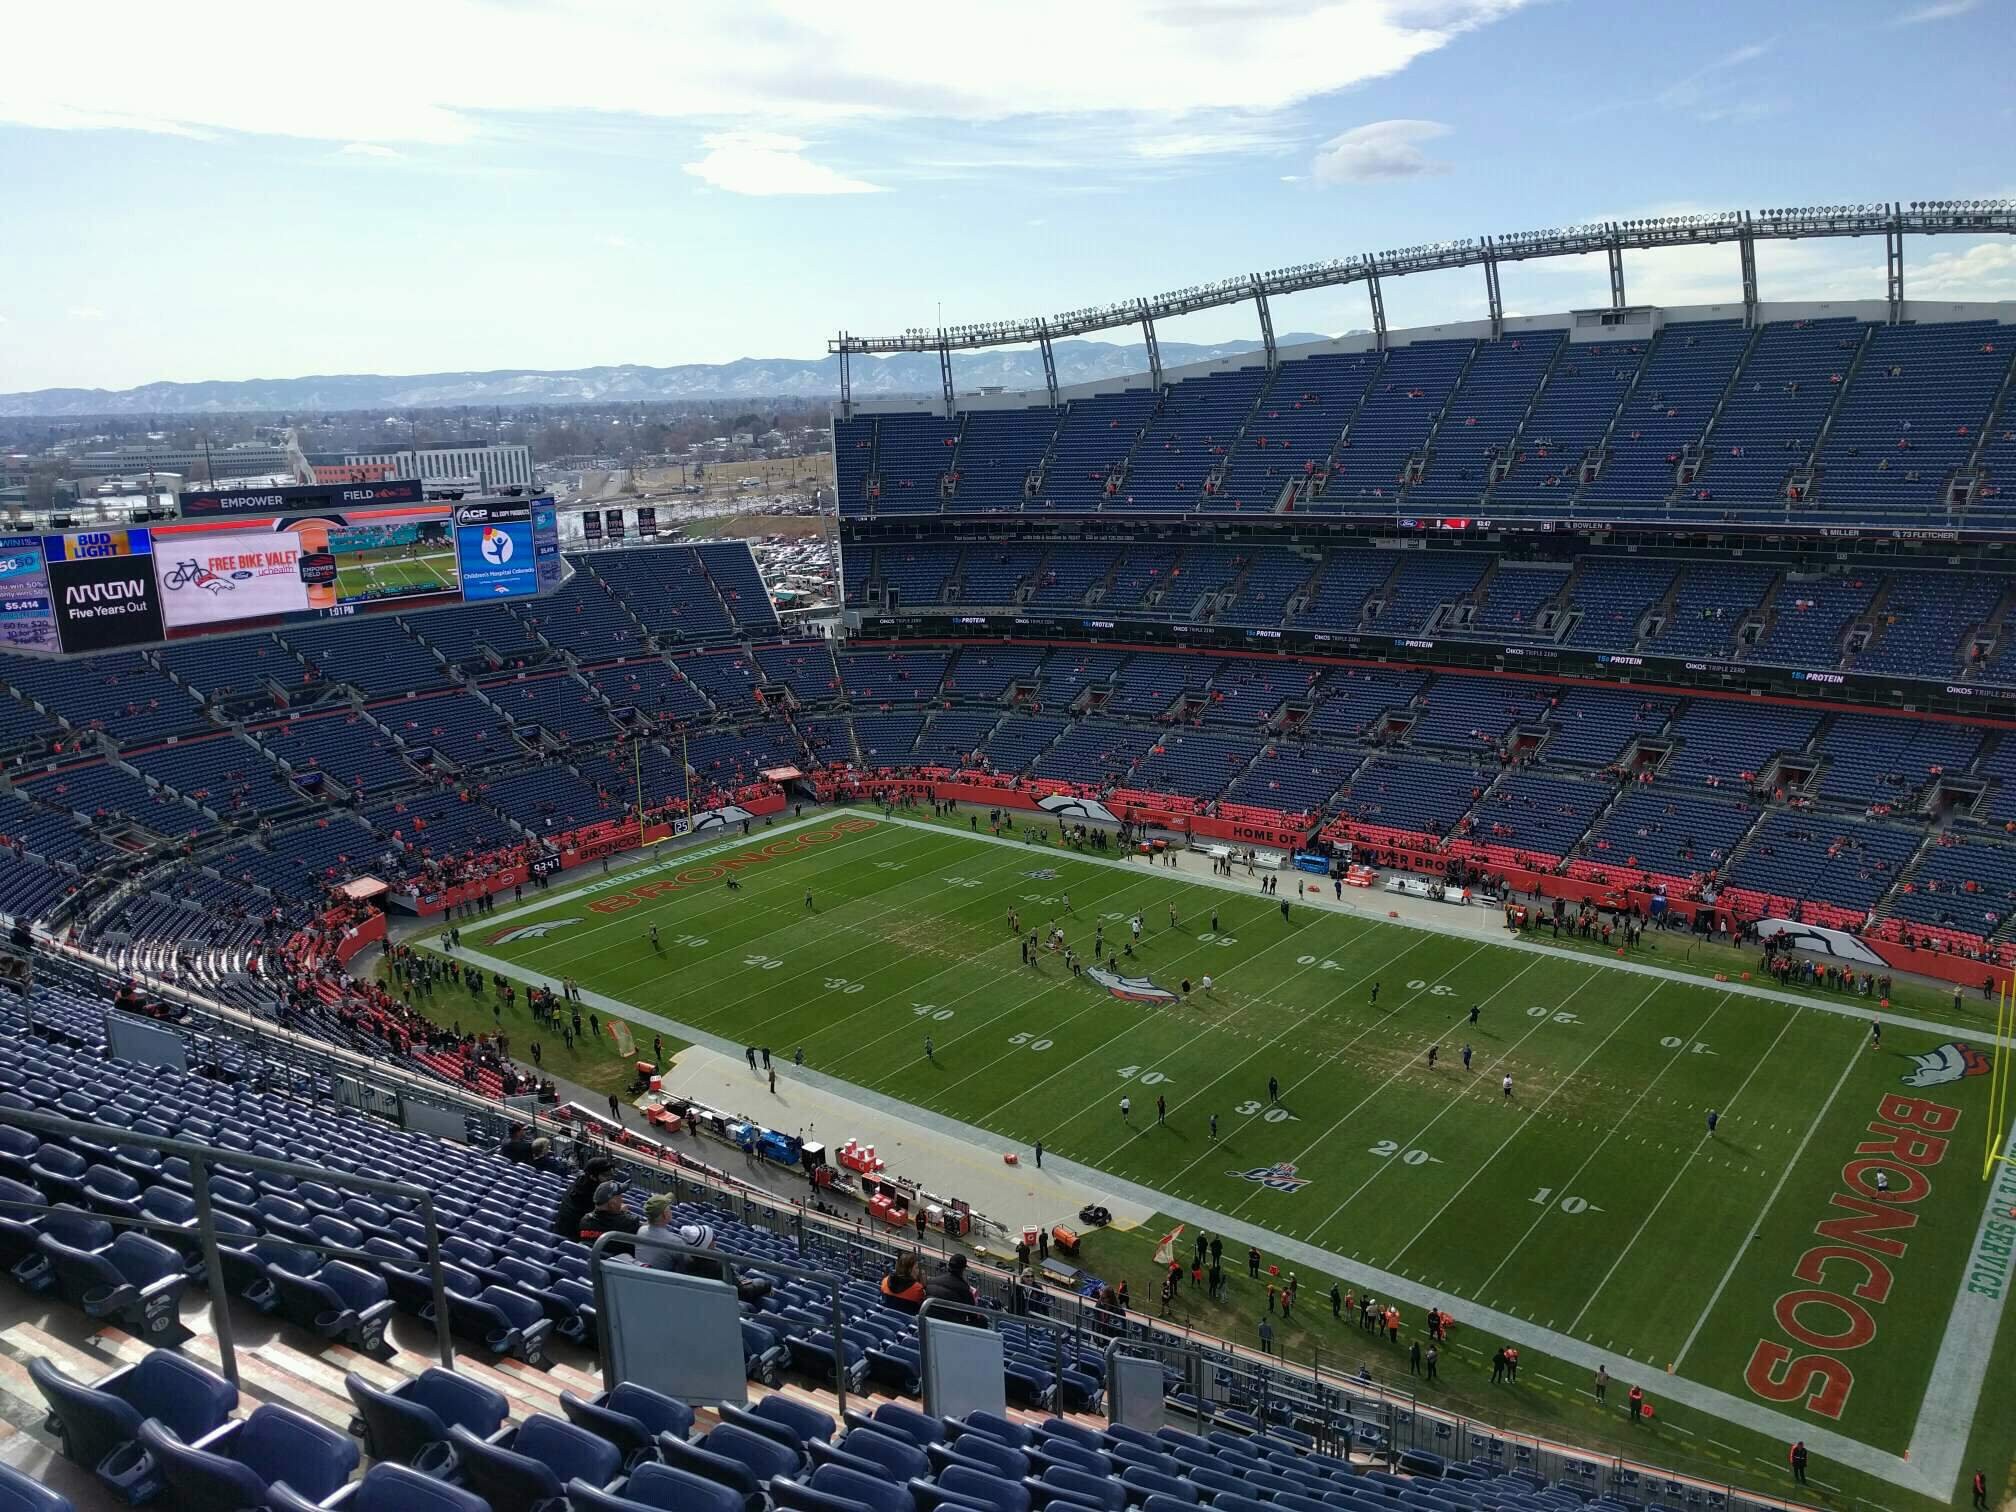 Empower Field at Mile High Stadium Section 529 Row 23 Seat 17